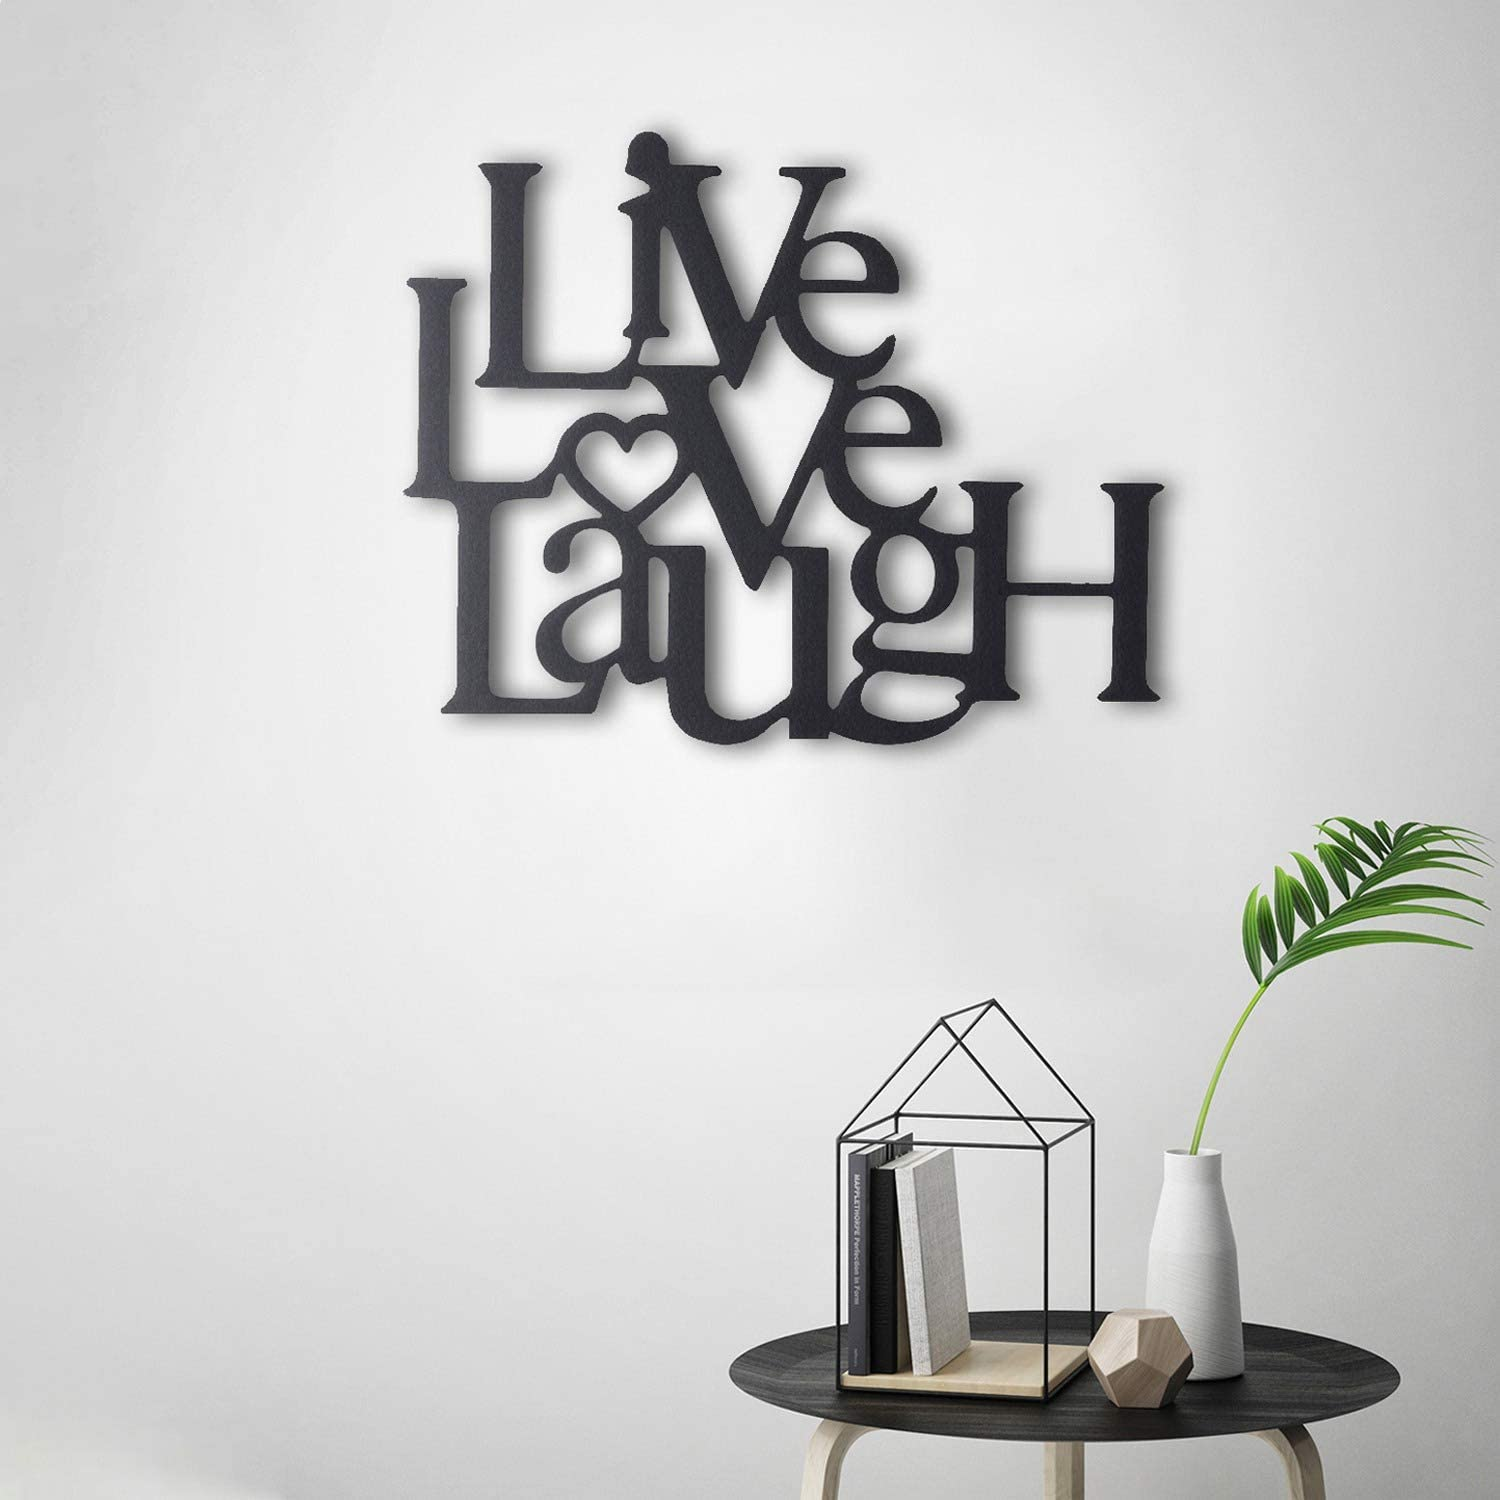 Tubibu Live Laugh Clearance SALE! Limited time! Love metal wall art Word Sculpture Metal Wall Ranking TOP8